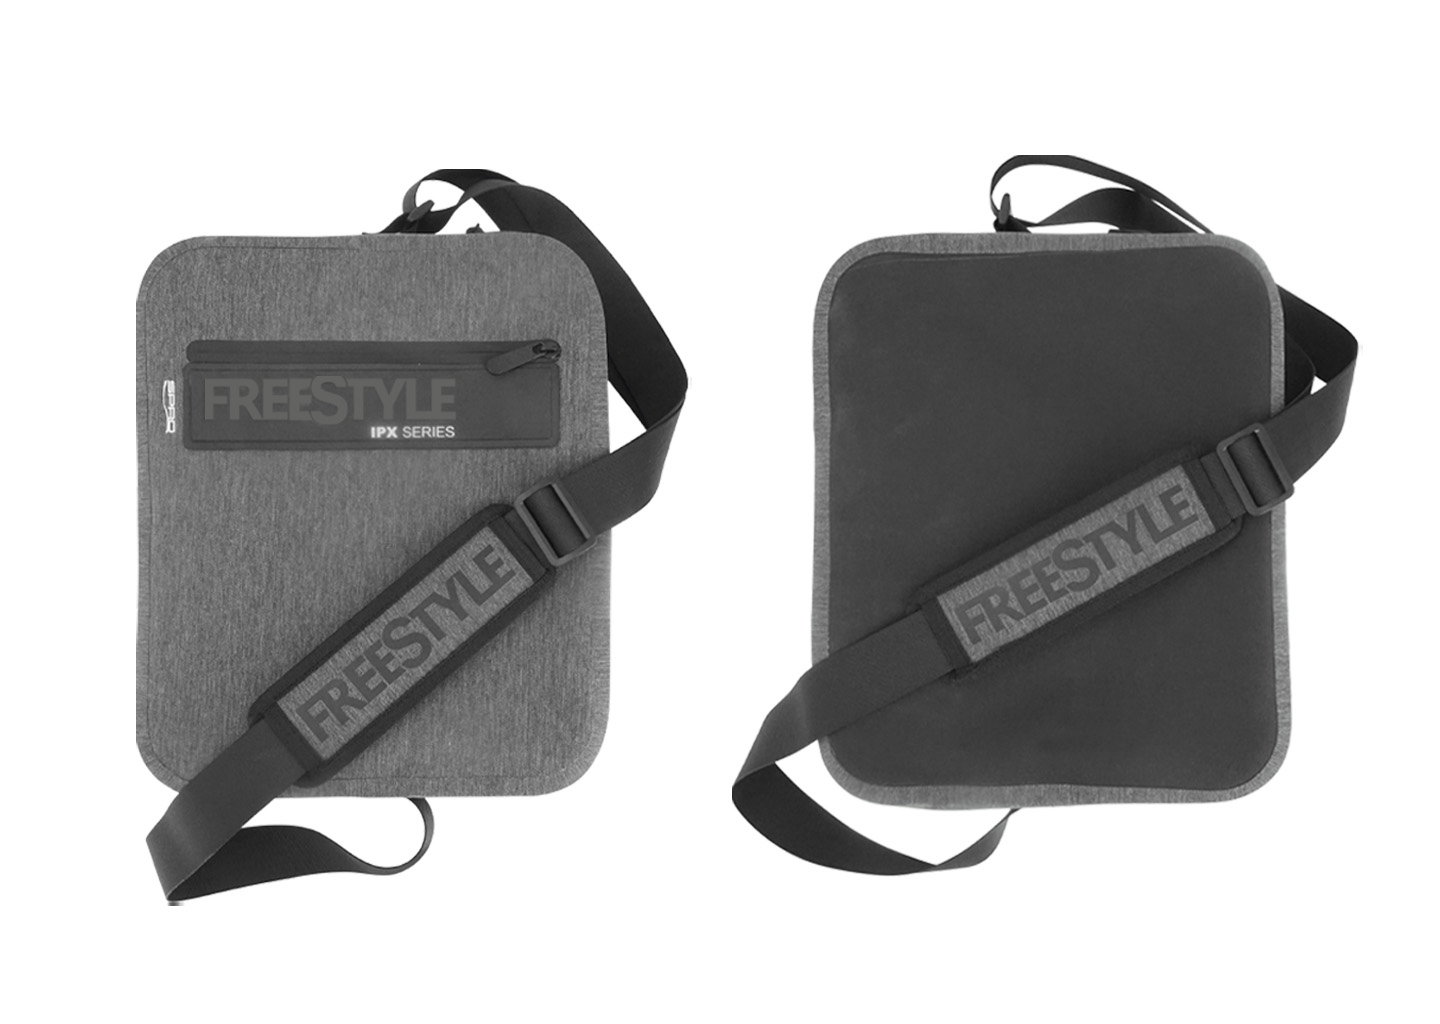 IPX Side Bag - Freestyle